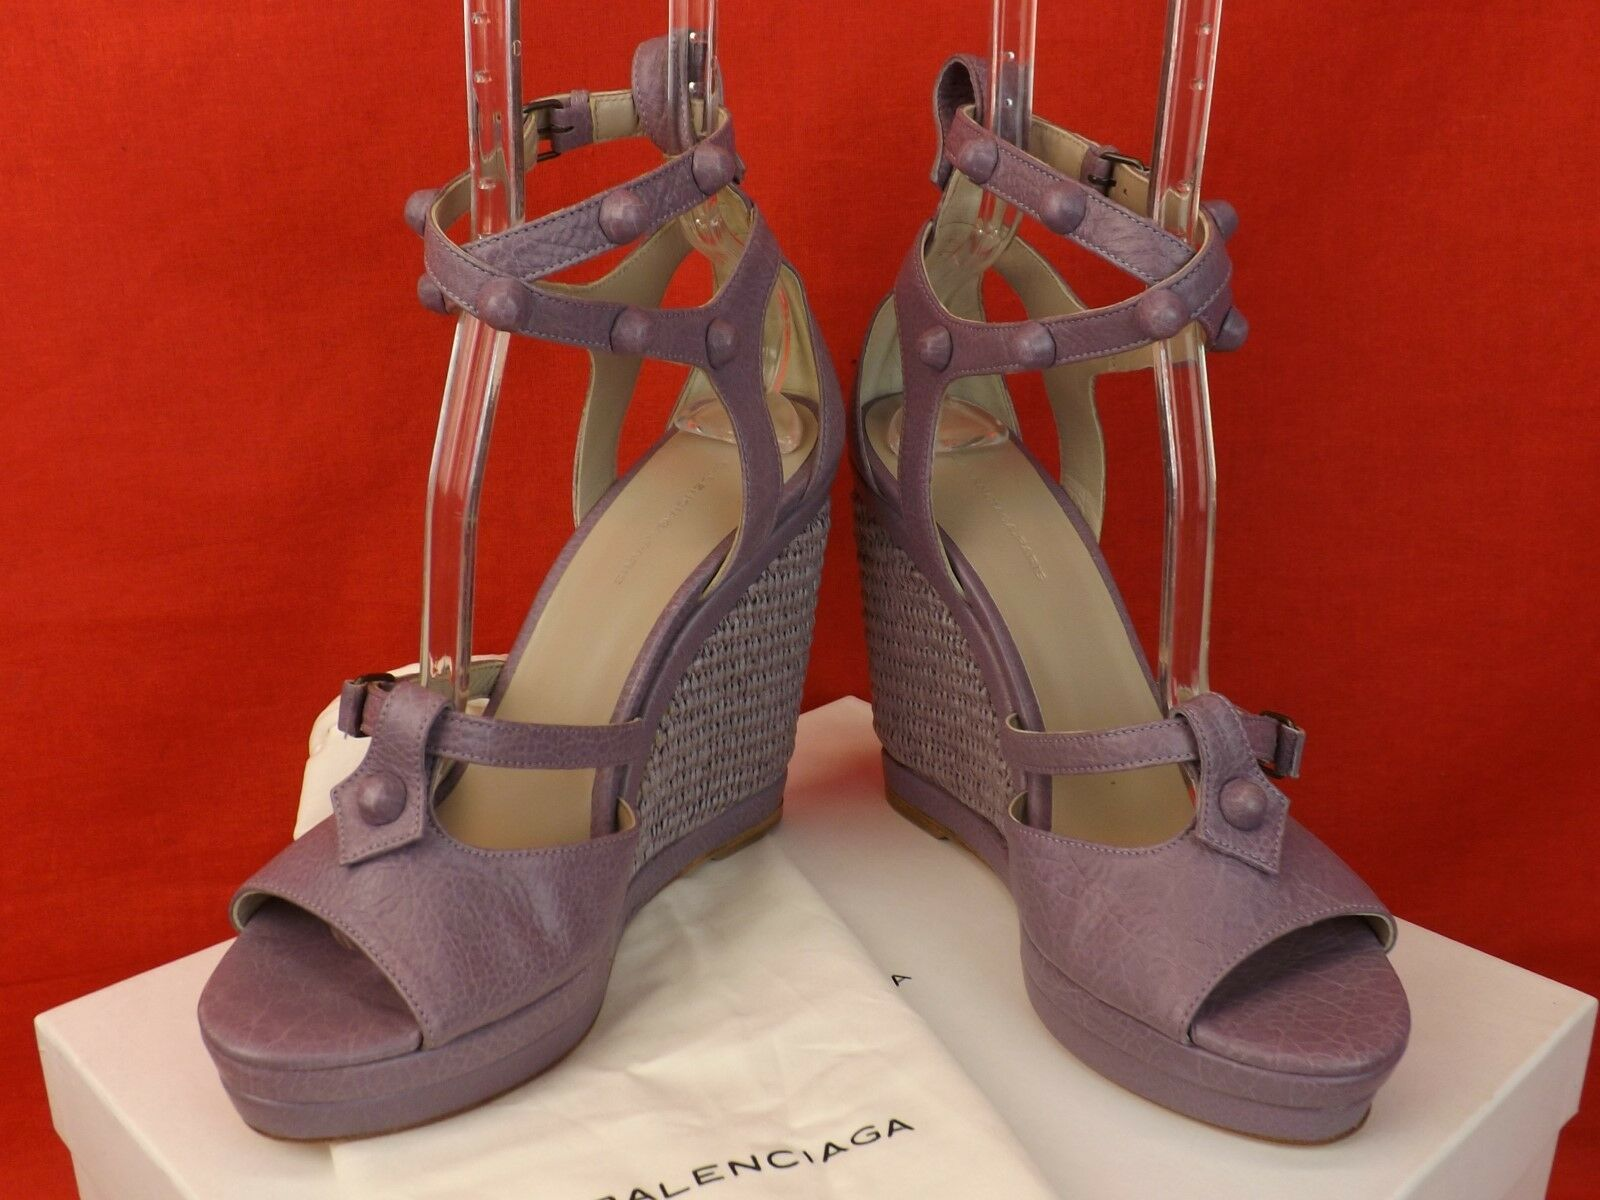 NIB BALENCIAGA ARENA GLYCINE LAVENDER LEATHER LEATHER LEATHER WEDGE STUDDED SANDALS 40 286068 5219f9